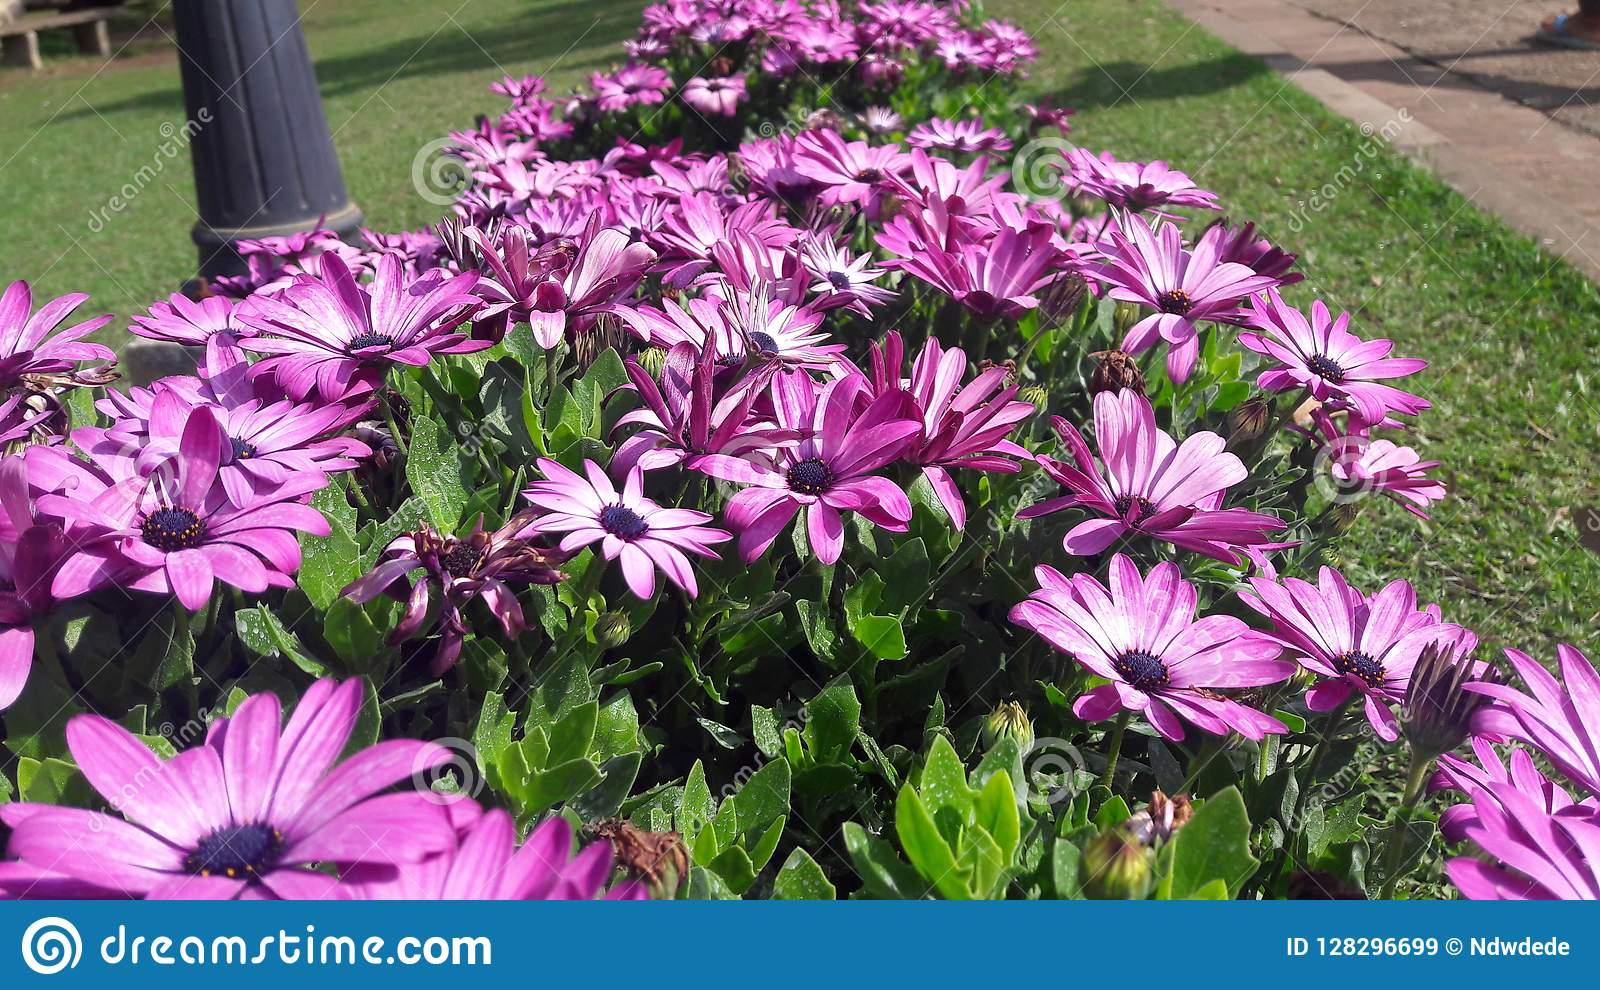 Awesome African daisies flowers with purple petals nice color royalty free stock images